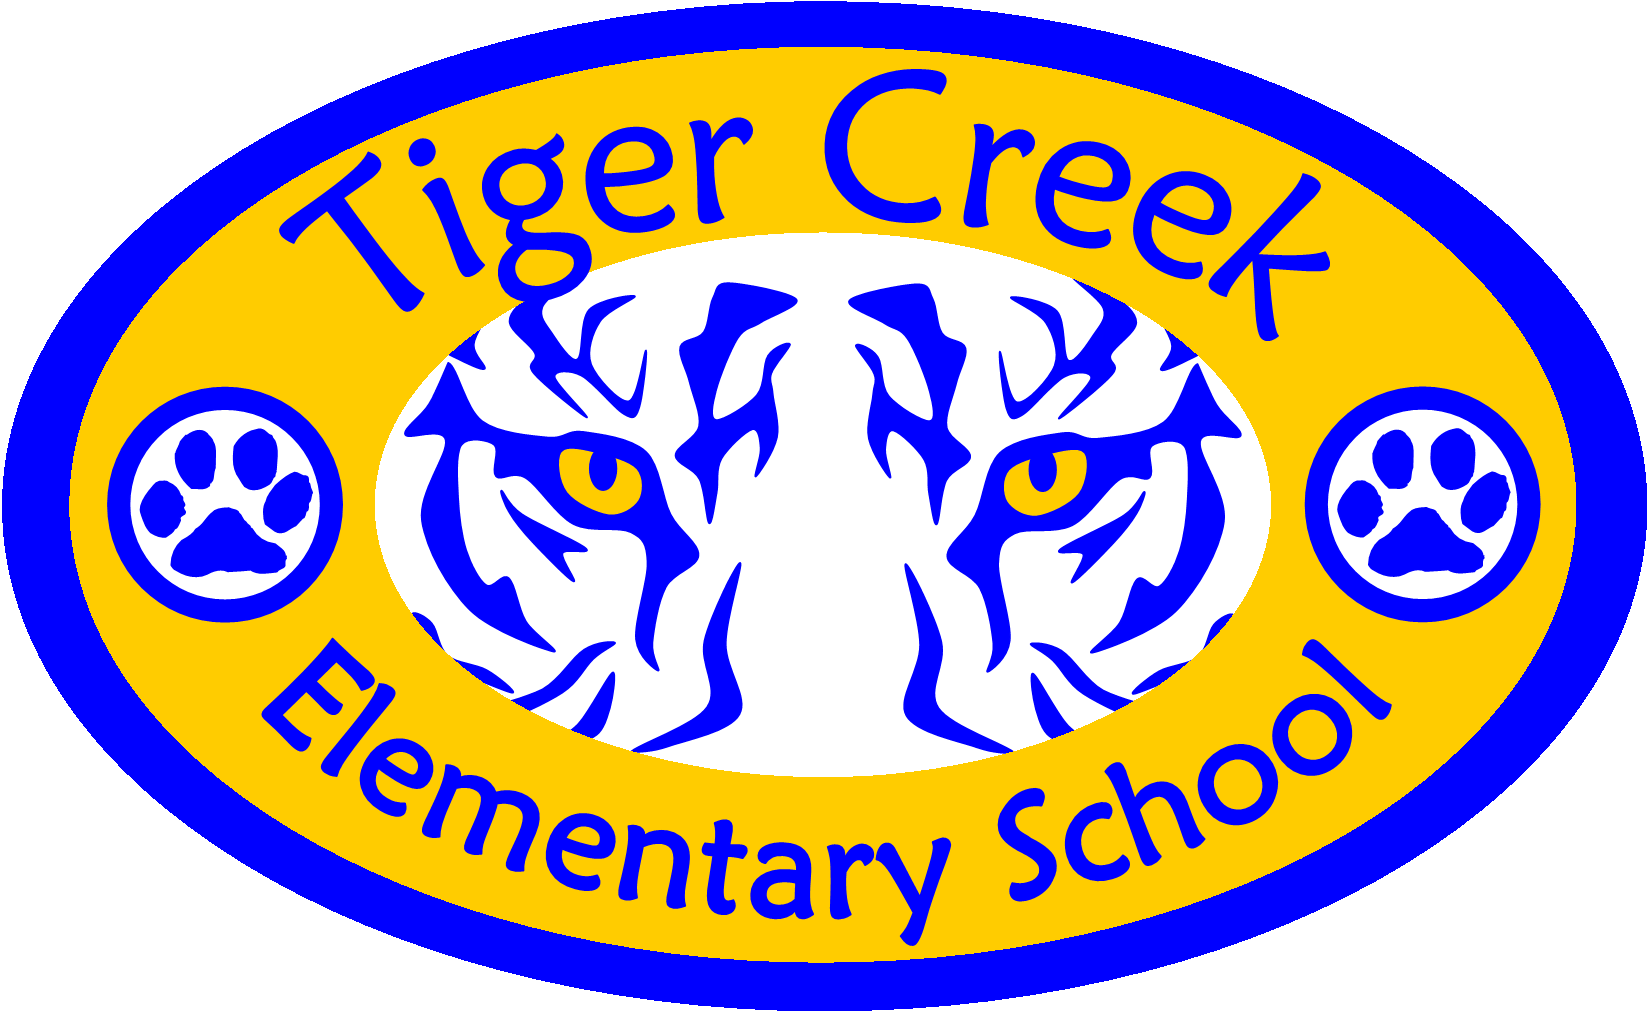 Teachers creed clipart picture free library Home - Tiger Creek Elementary School picture free library